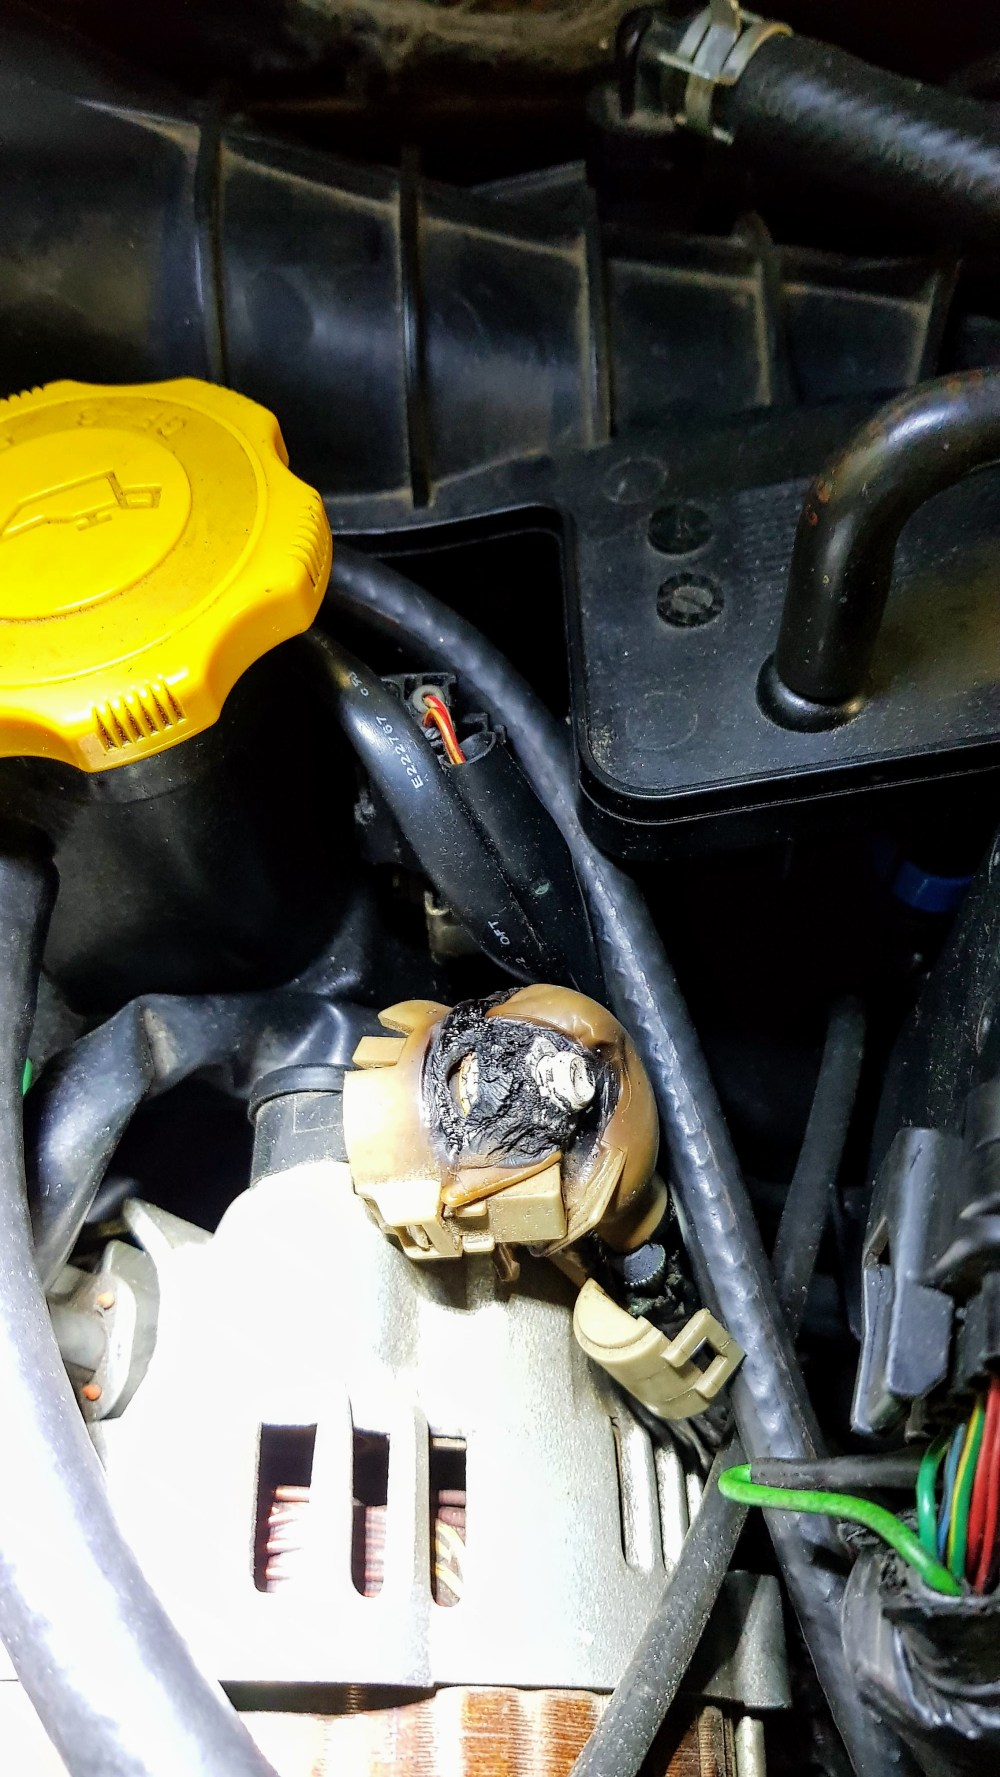 medium resolution of alternator plastic cover hose melted rx8club comautomotive wiring harness melted 17